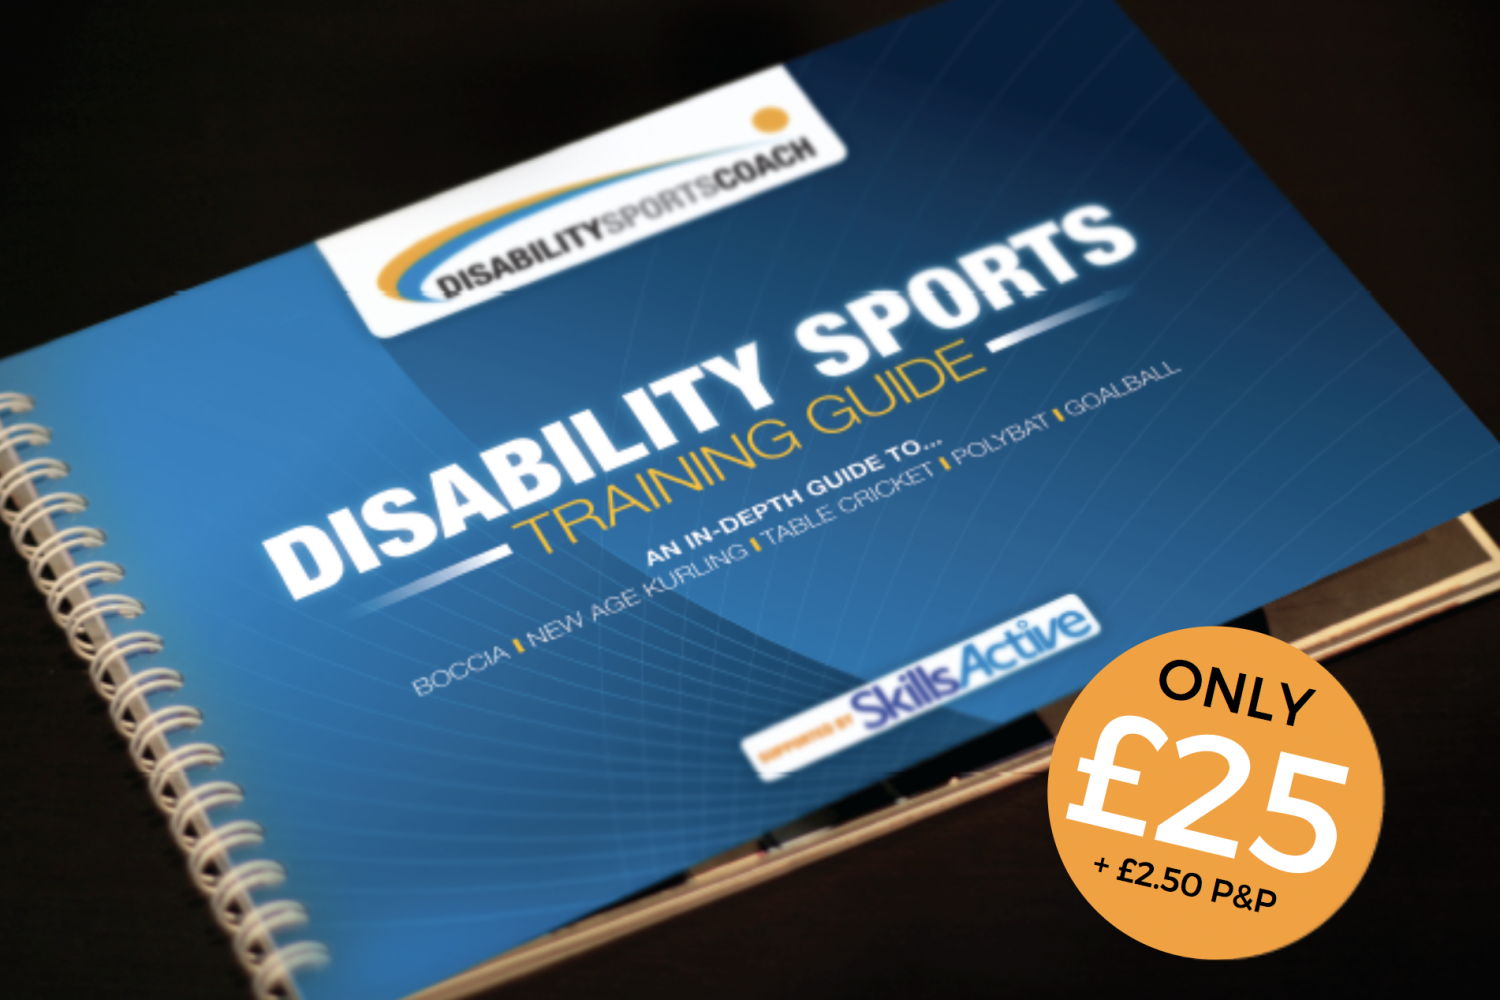 DSC Training Guide - Disability Sports Guide